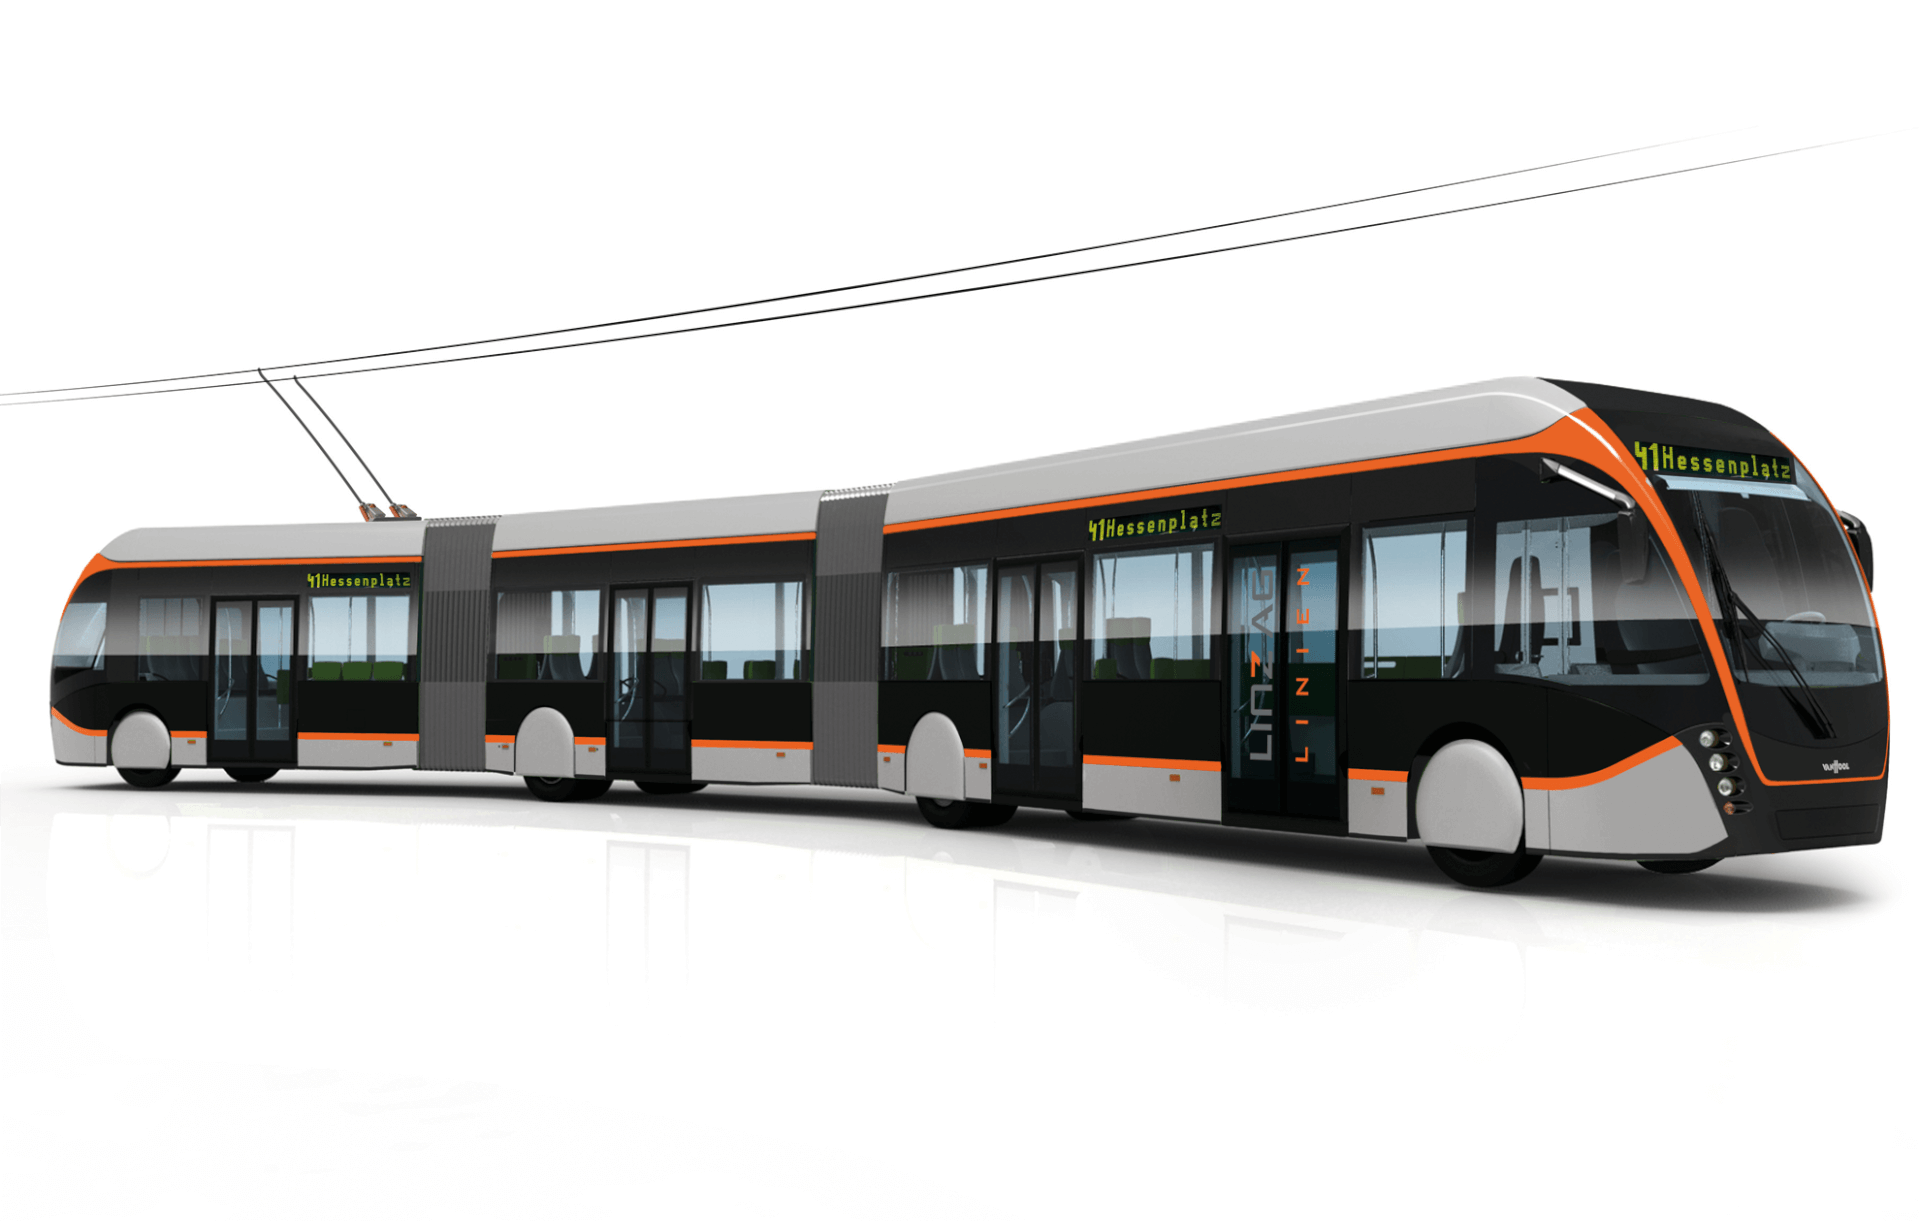 rendering of a modern e-bus, big carrier